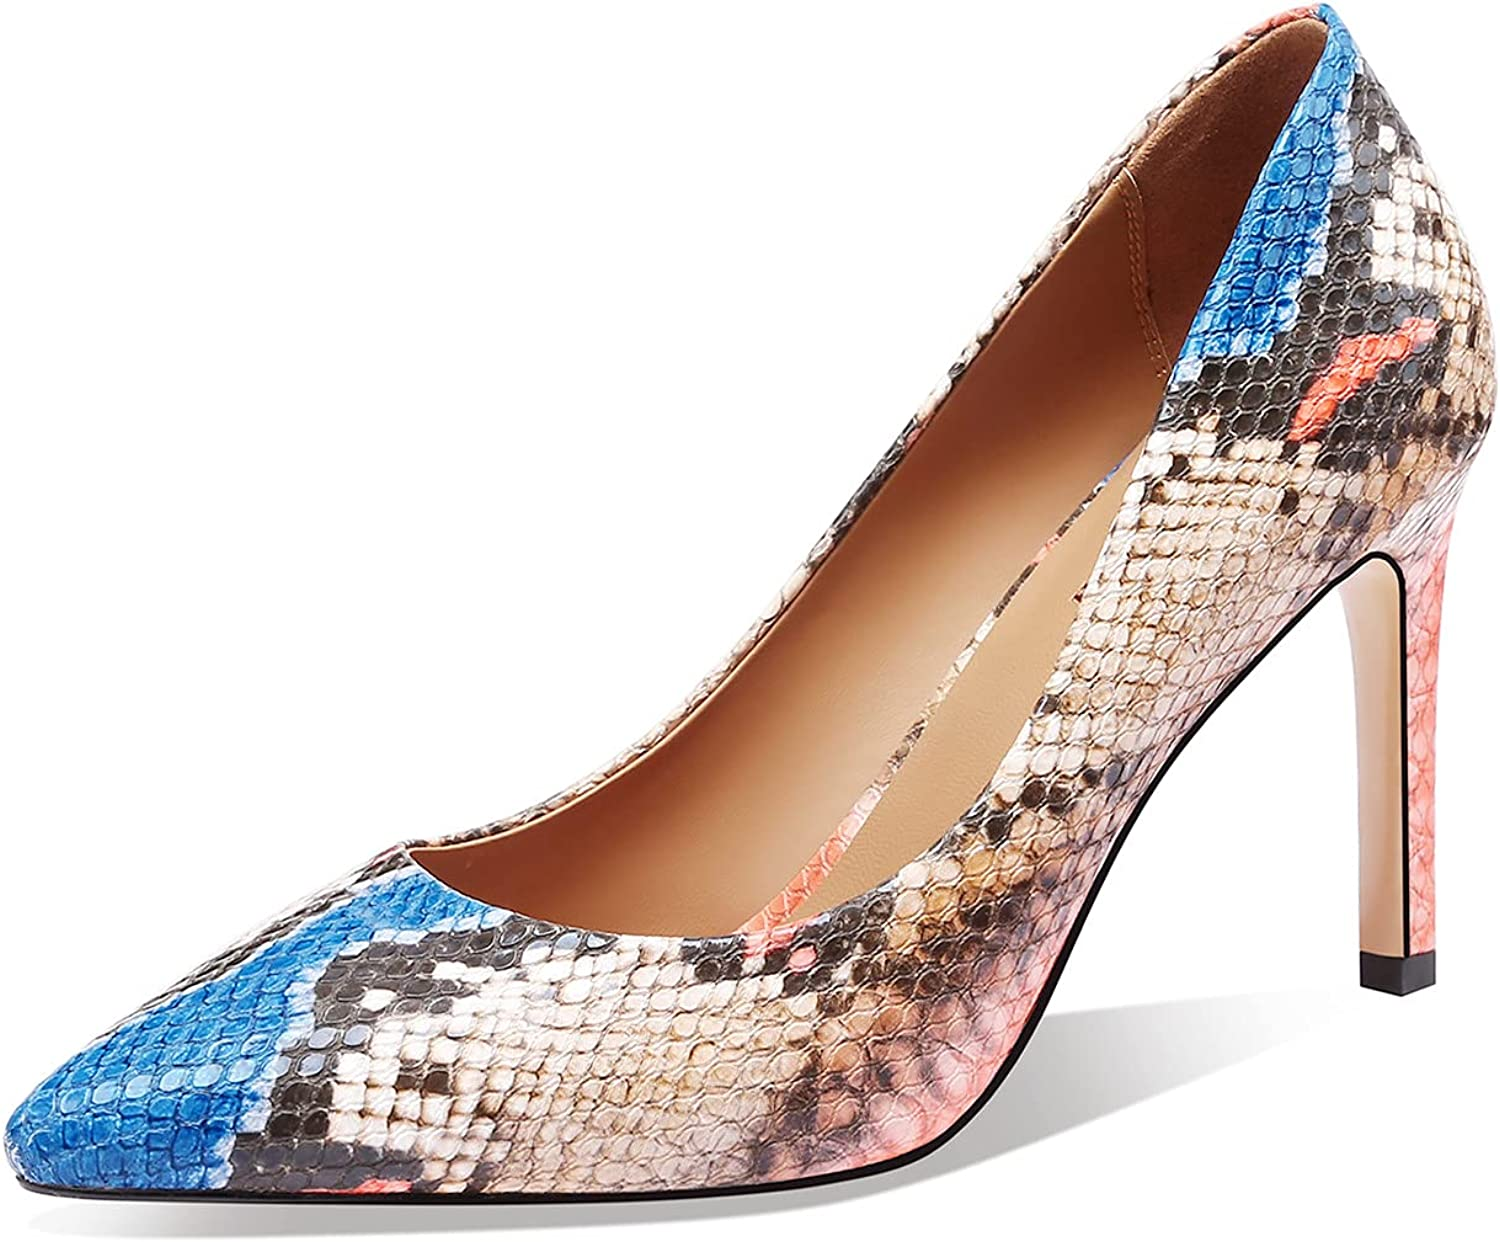 JIMISHOW Women Snakeskin Heels Stiletto Print Sales of SALE items from new works Heeled Pump Python OFFer